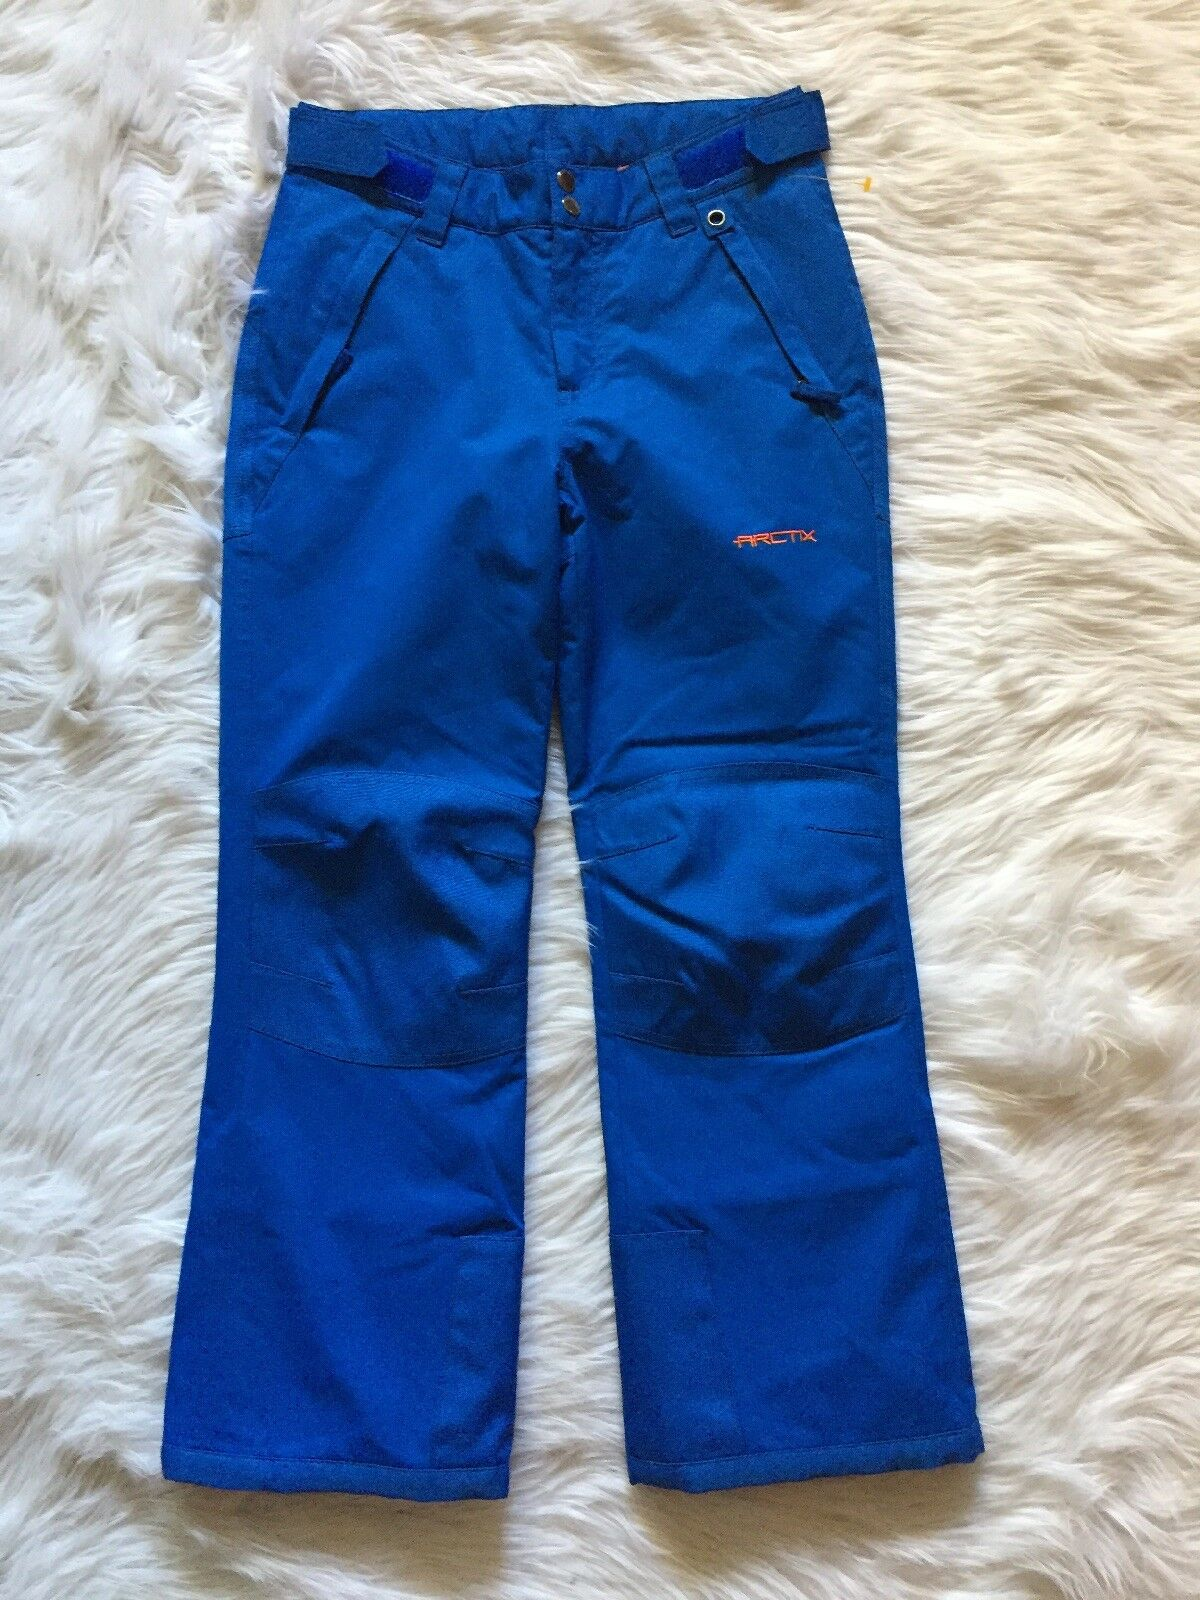 Arctix Youth Sz M 10-12 Snow Pants  with Reinforced Knees & Seat Royal bluee  is discounted